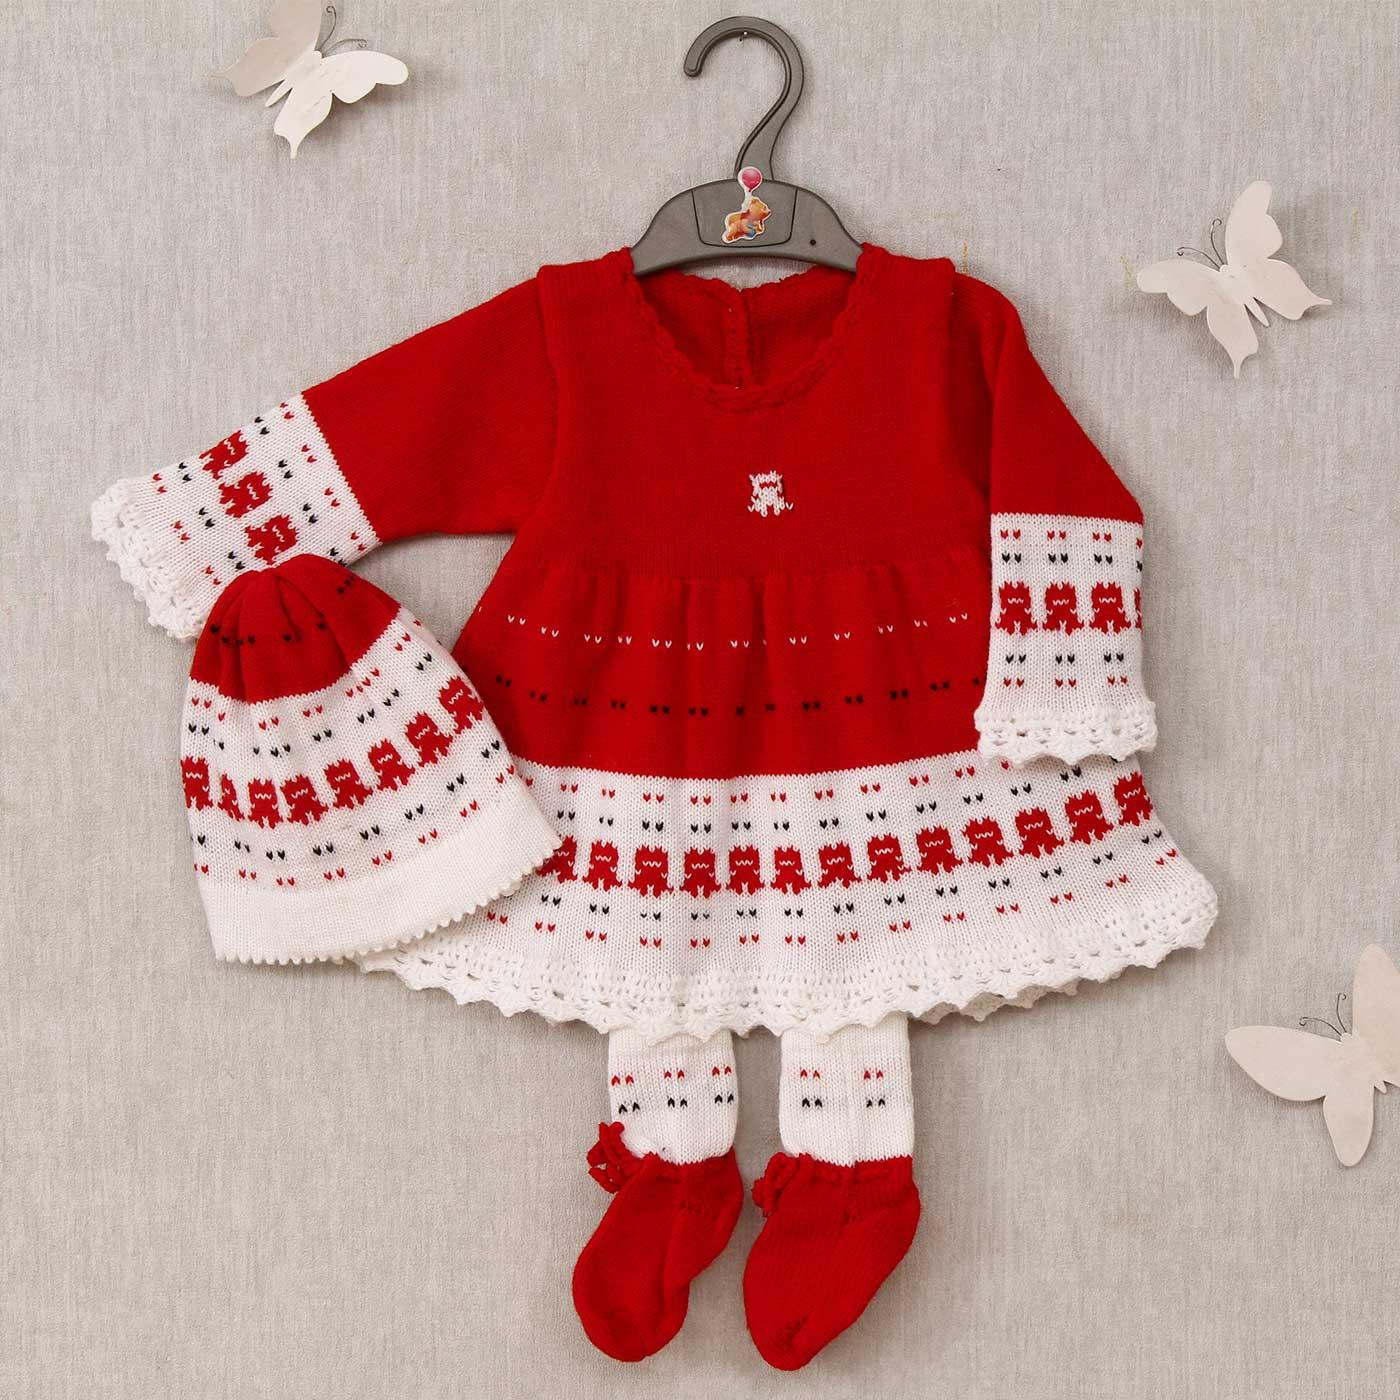 red white woolen frock with socks cap for baby girl